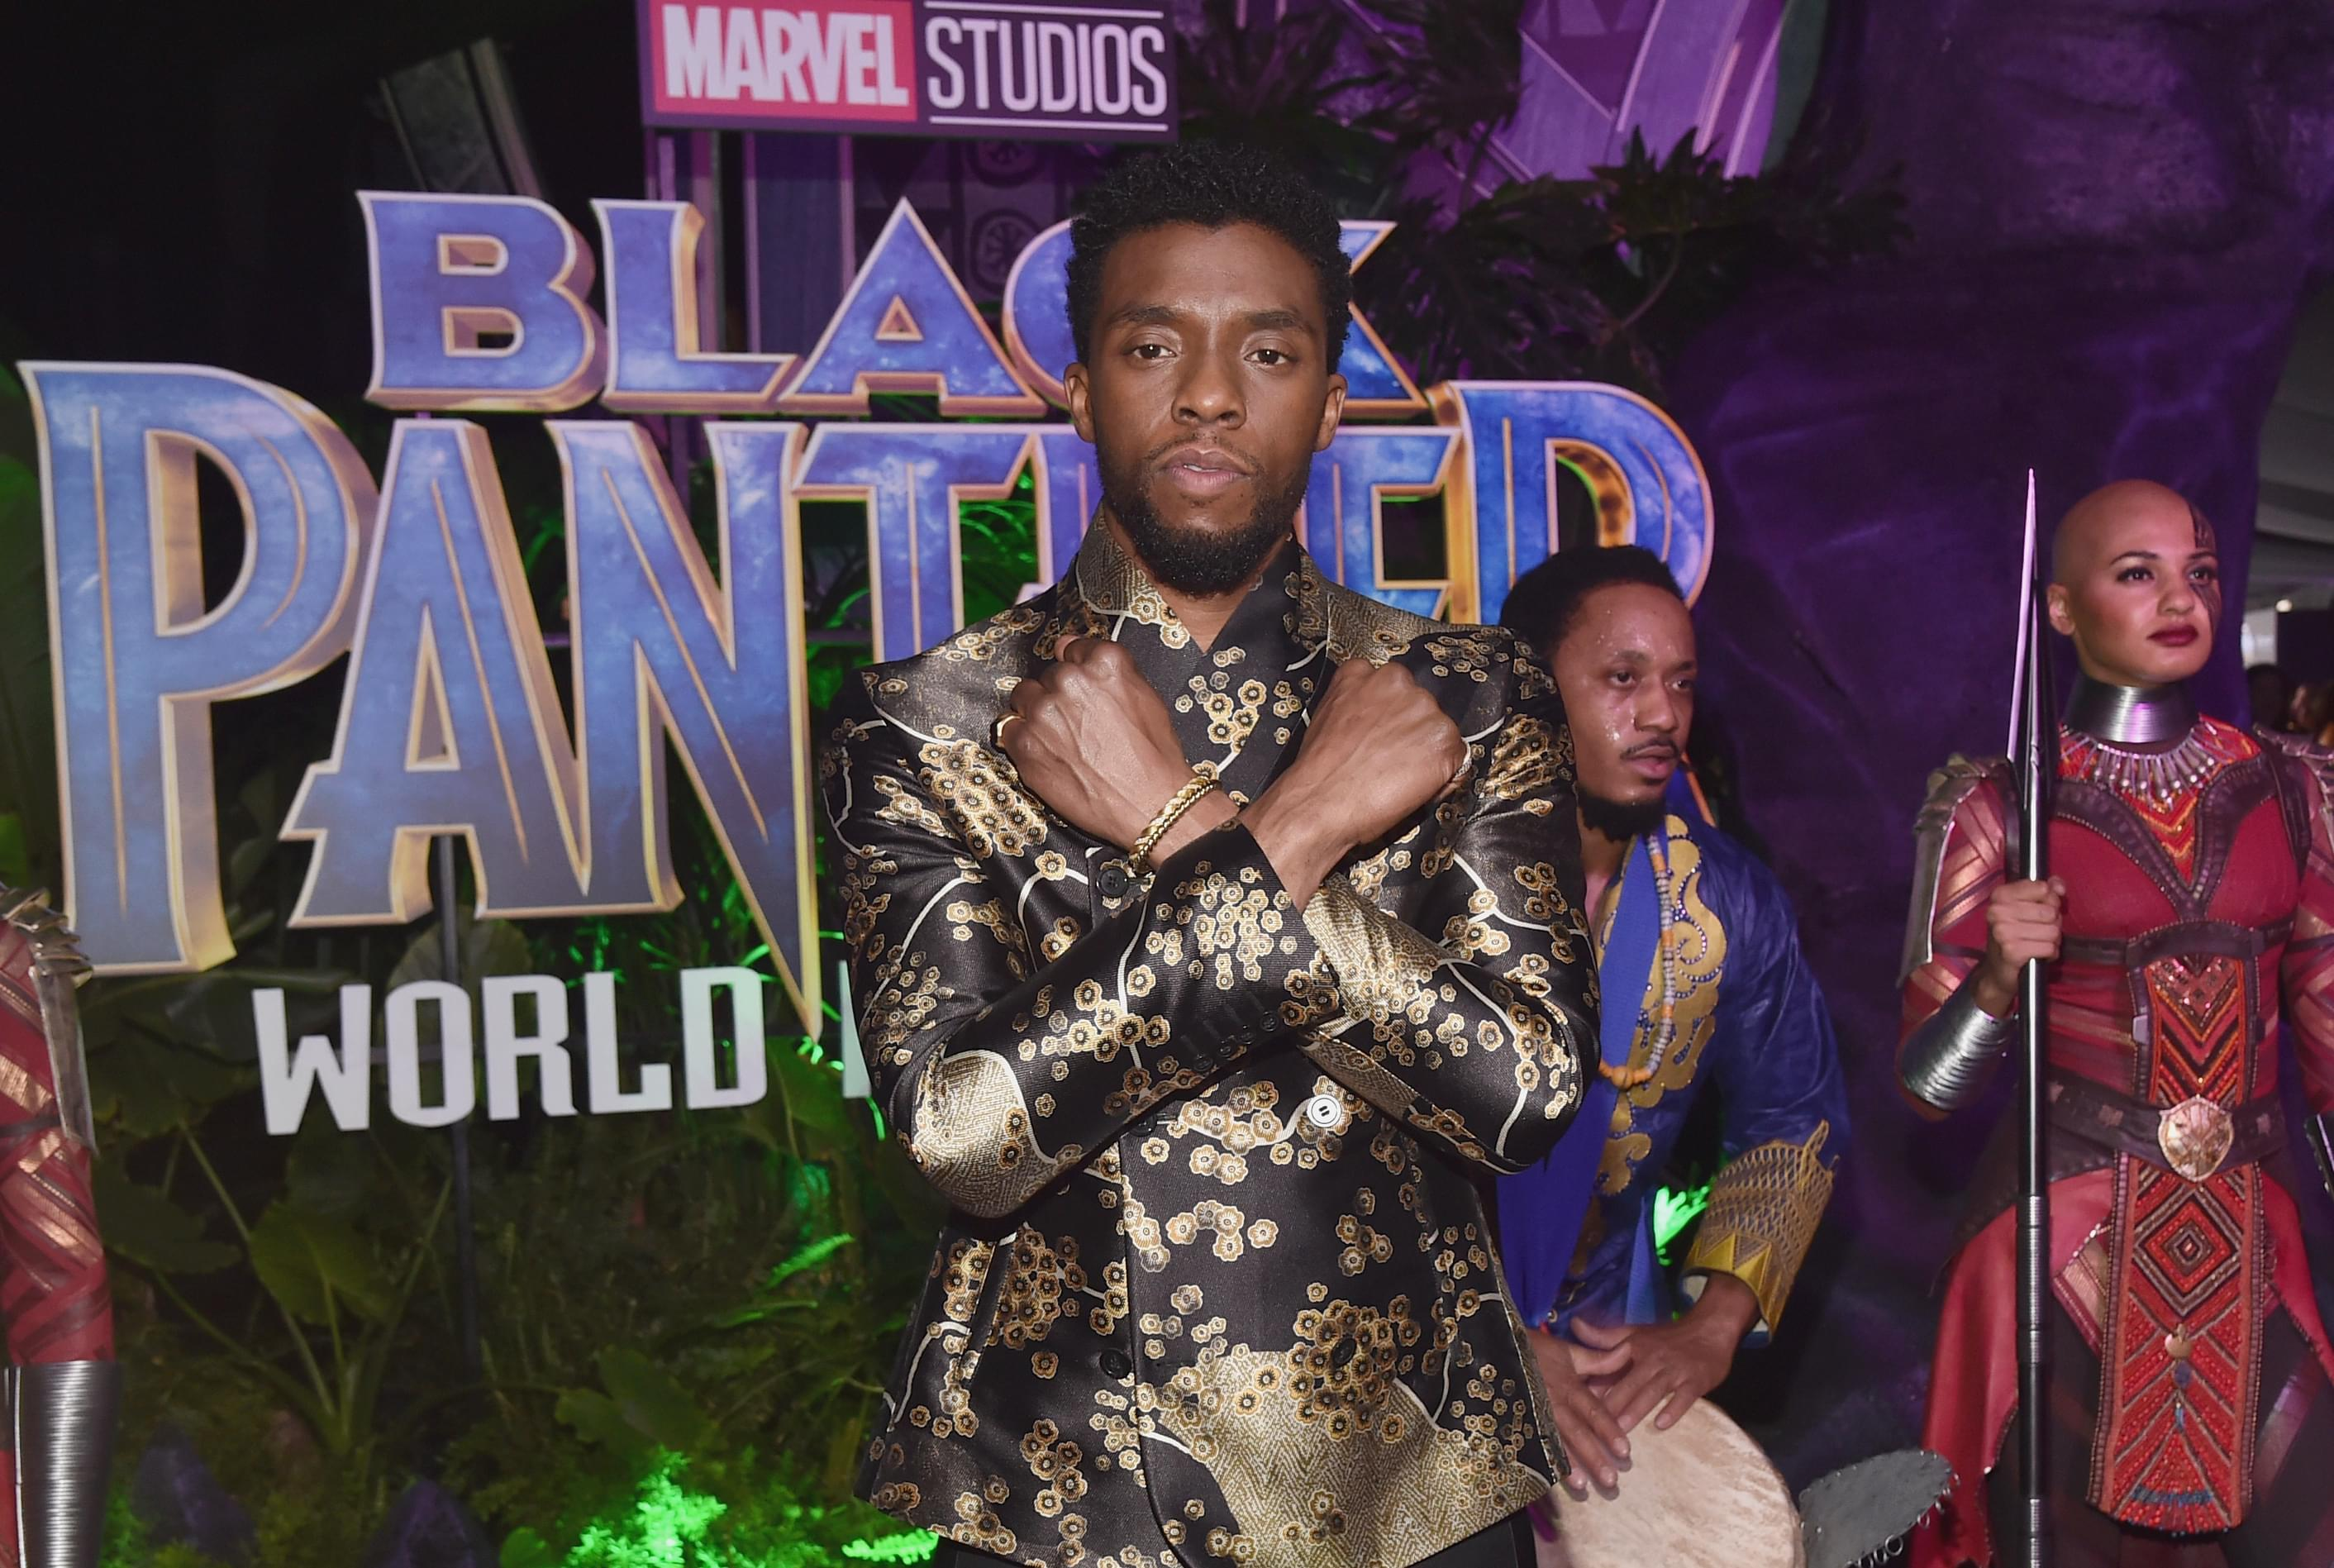 Black Panther Among Two Other Movies Soundtracks On Billboard Top 200